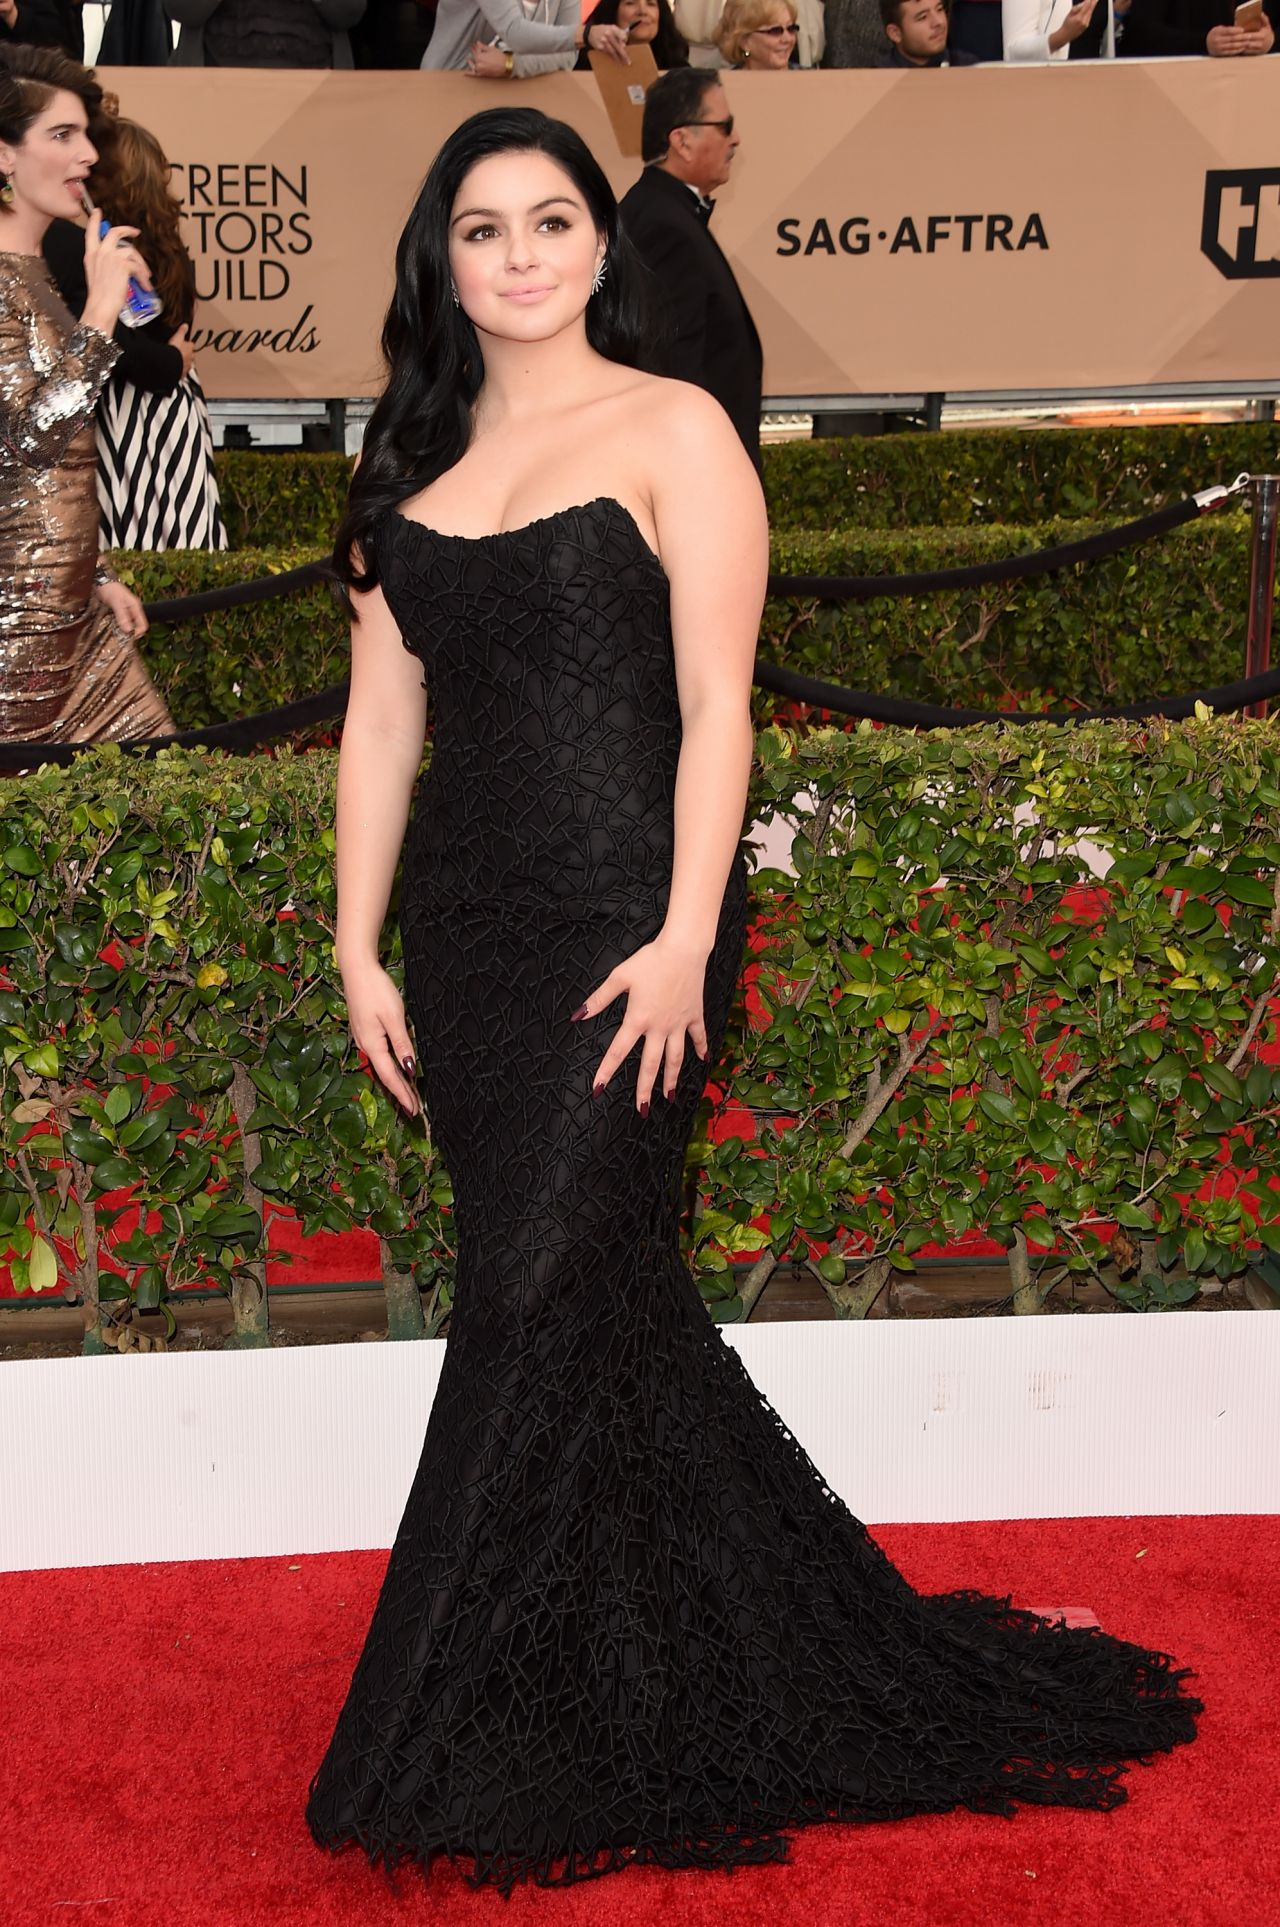 ariel-winter-sag-awards-2016-at-shrine-auditorium-in-los-angeles-1